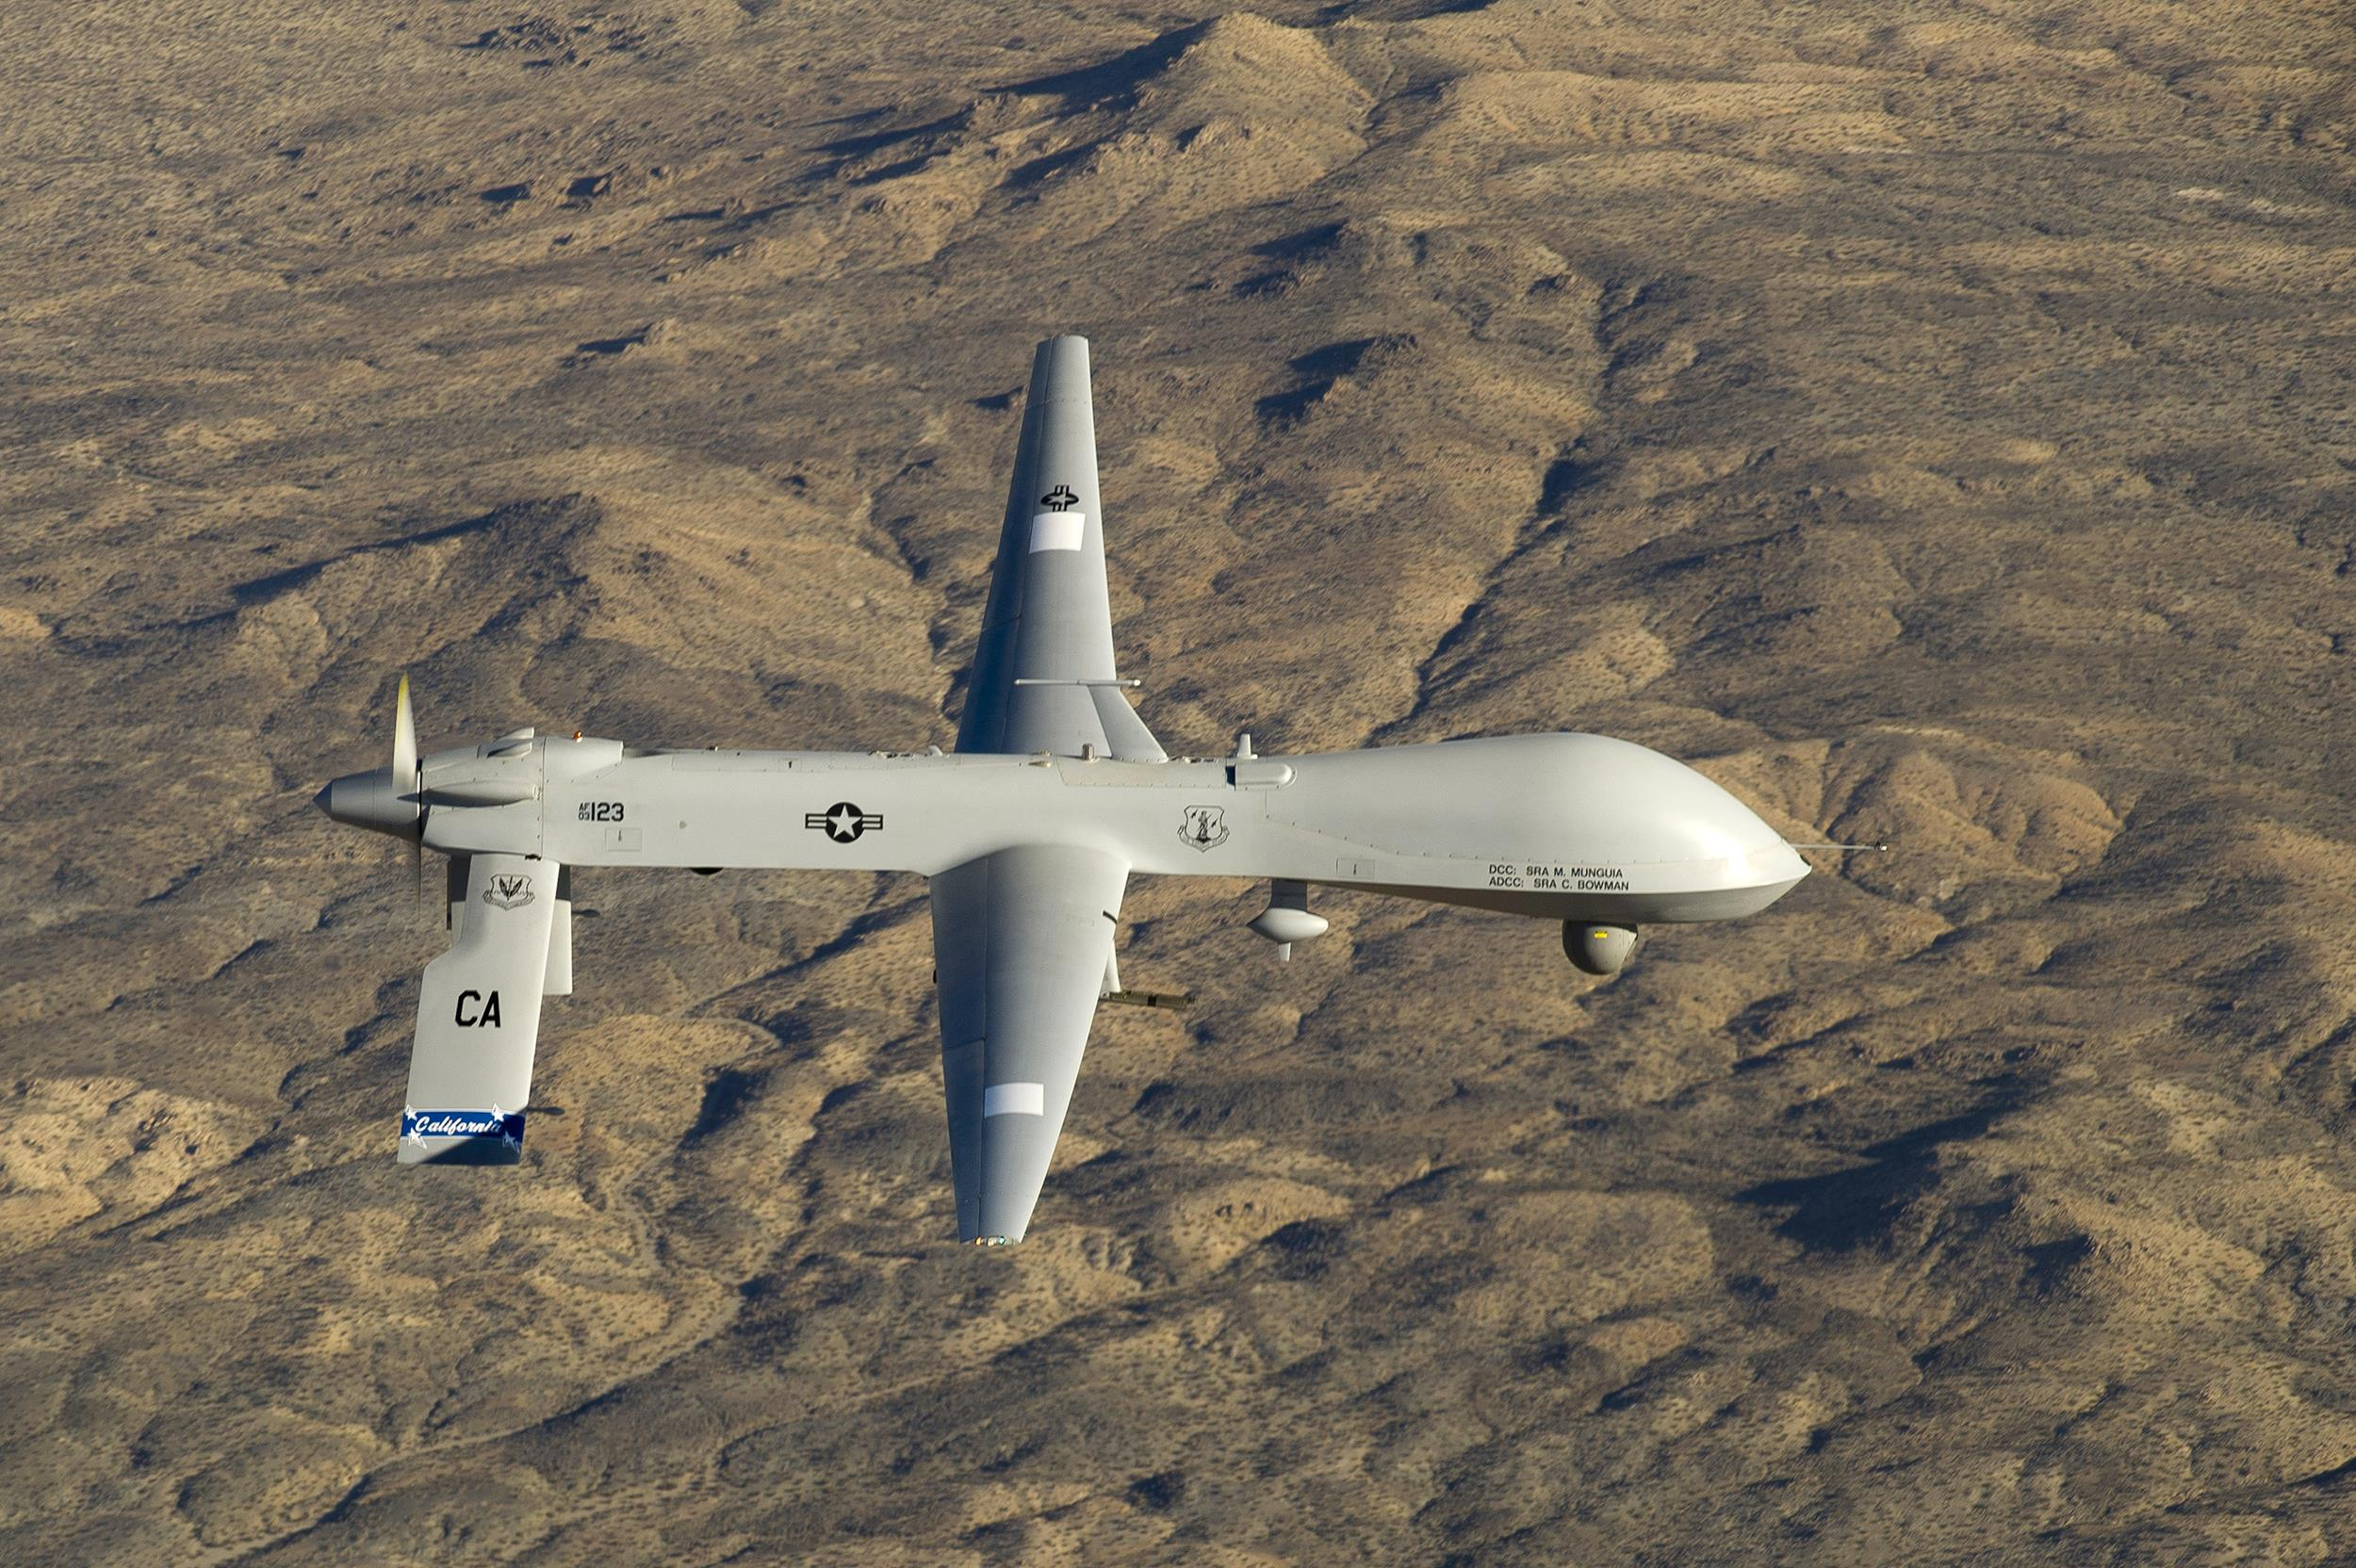 Image: A U.S. Air Force MQ-1 Predator unmanned aerial vehicle flies near the Southern California Logistics Airport in Victorville, Calif. on Jan. 7, 2012.